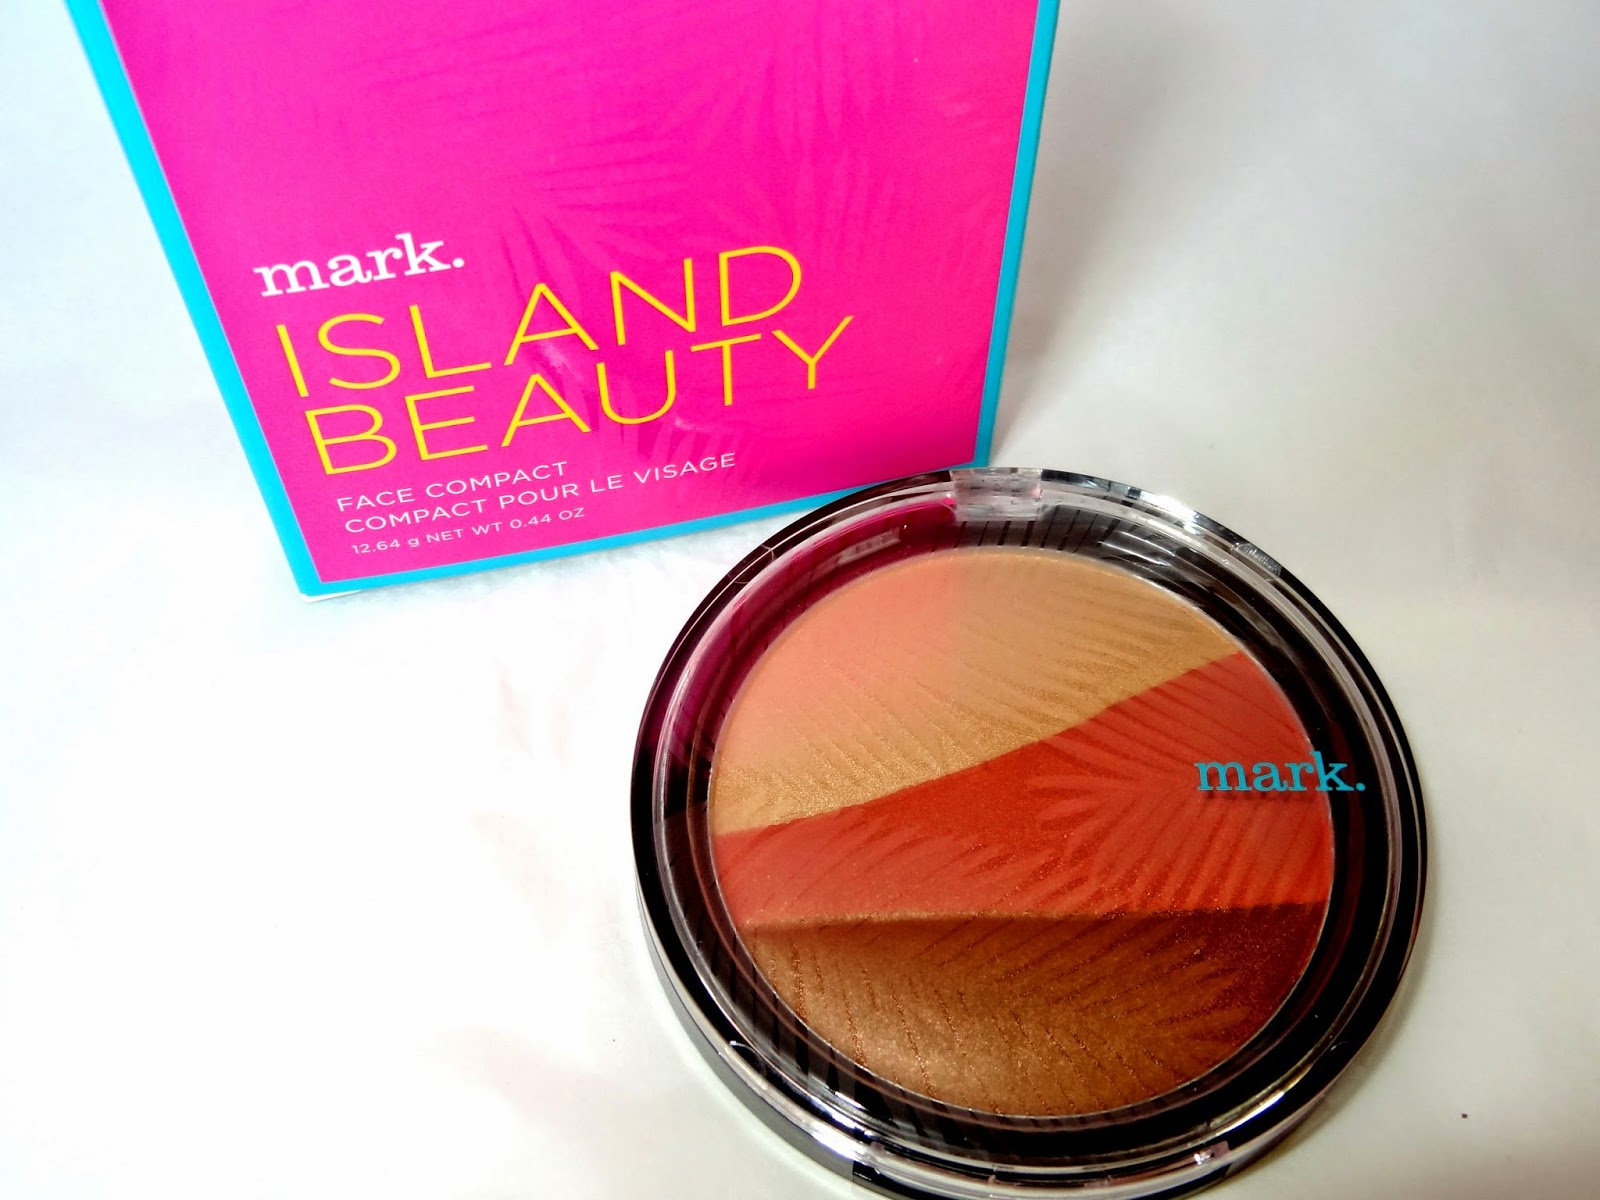 Picture of the Mark Beauty Face Compact from the St Barts Soleil Instant Vacation Collection